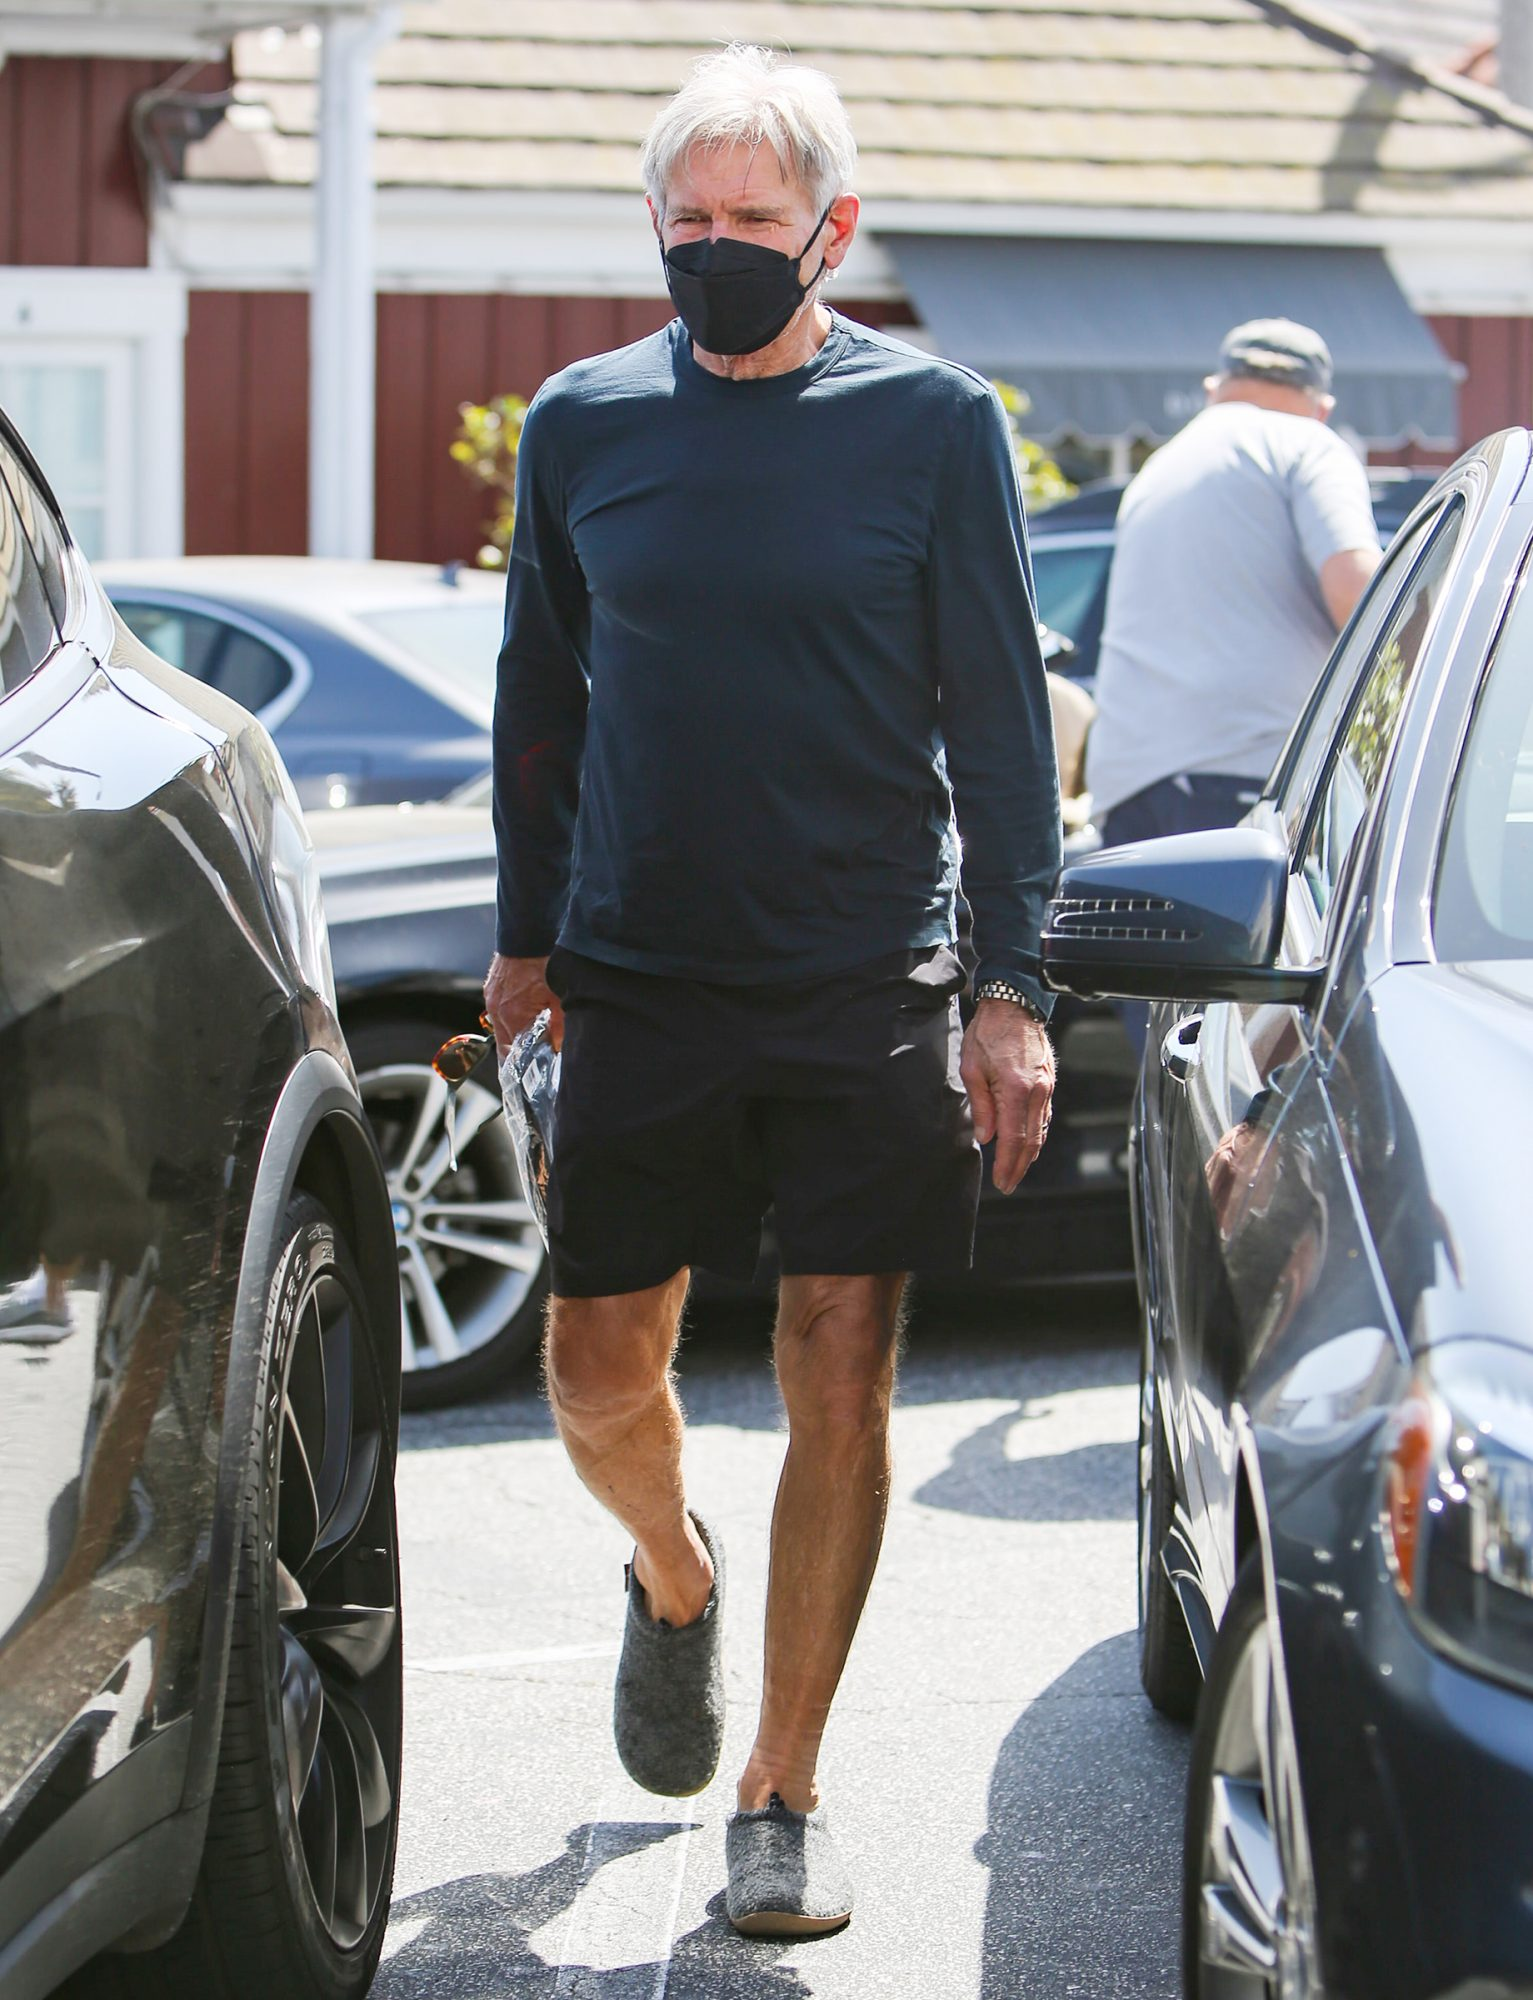 Harrison Ford is seen on March 30, 2021 in Los Angeles, California